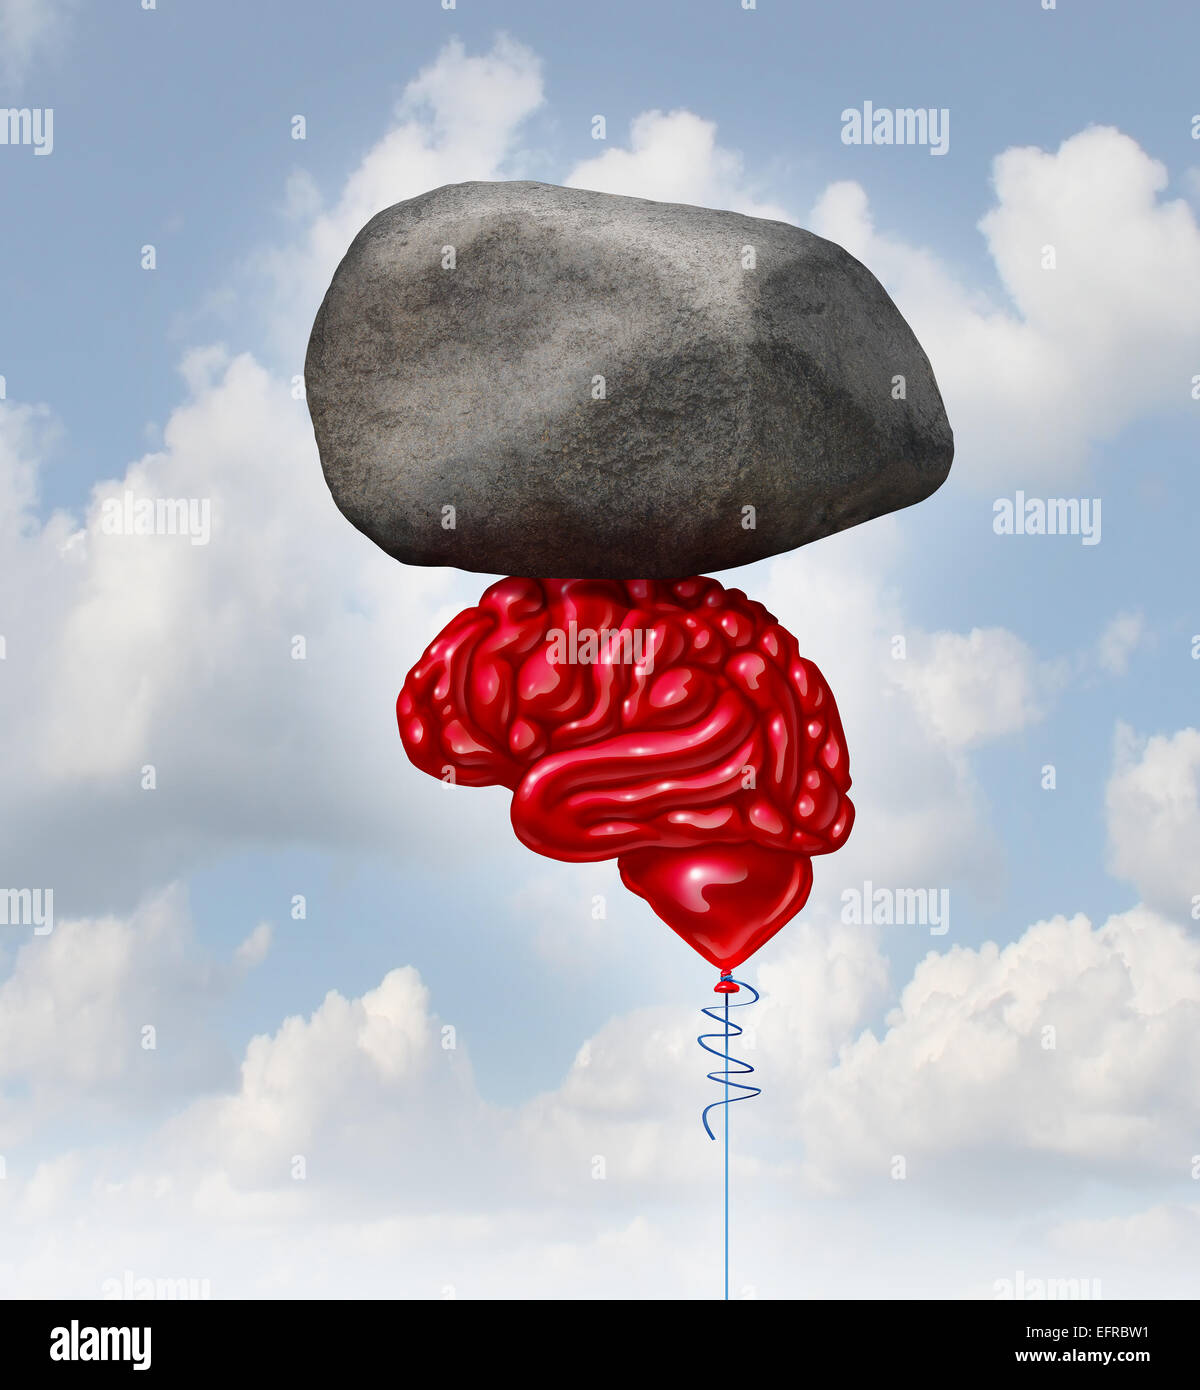 Brain power concept as a red balloon shaped as a human thinking organ lifting up a heavy rock as a symbol and mental - Stock Image